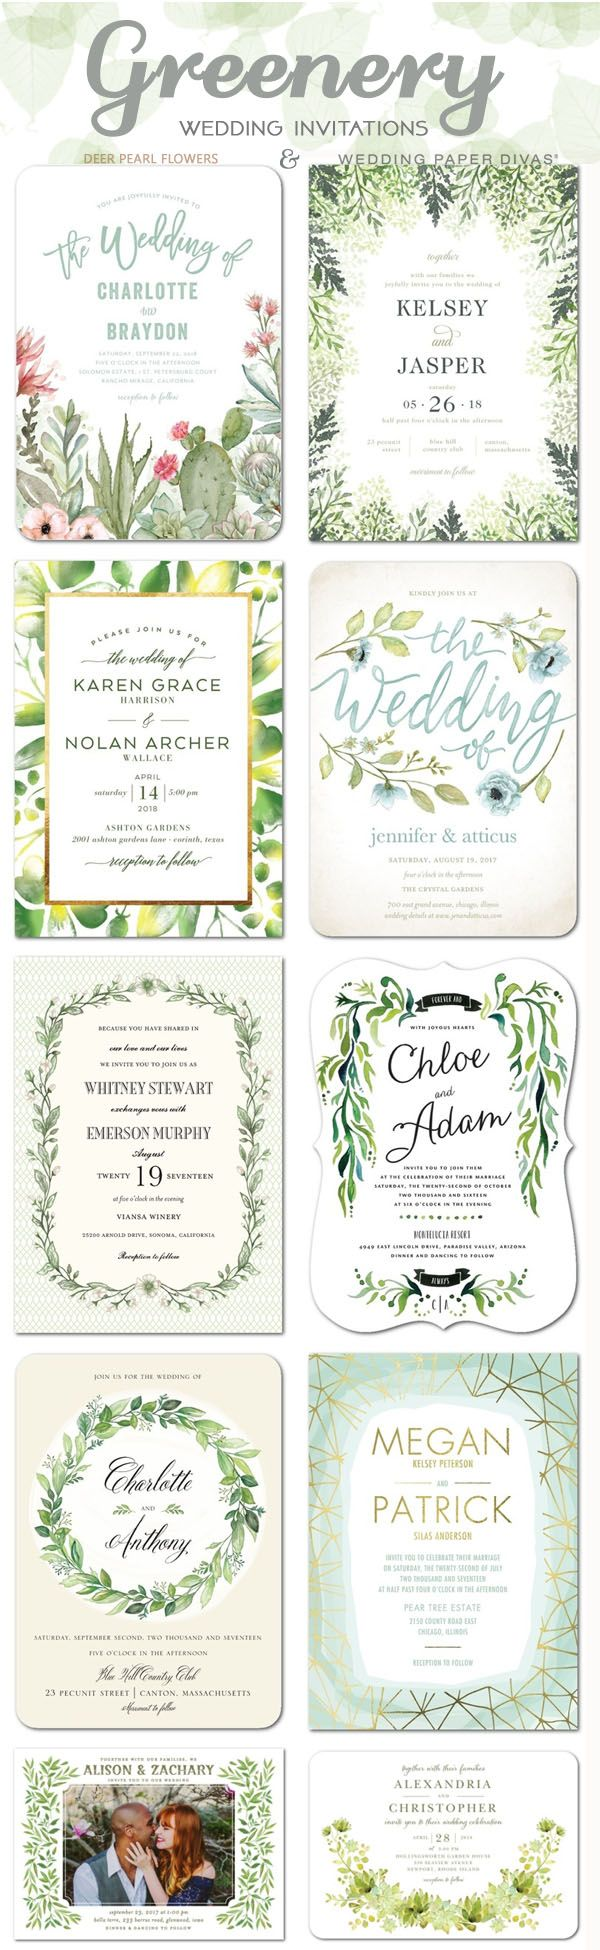 Green wedding color ideas - Greenery wedding invitations / http://www.deerpearlflowers.com/greenery-wedding-decor-ideas/3/